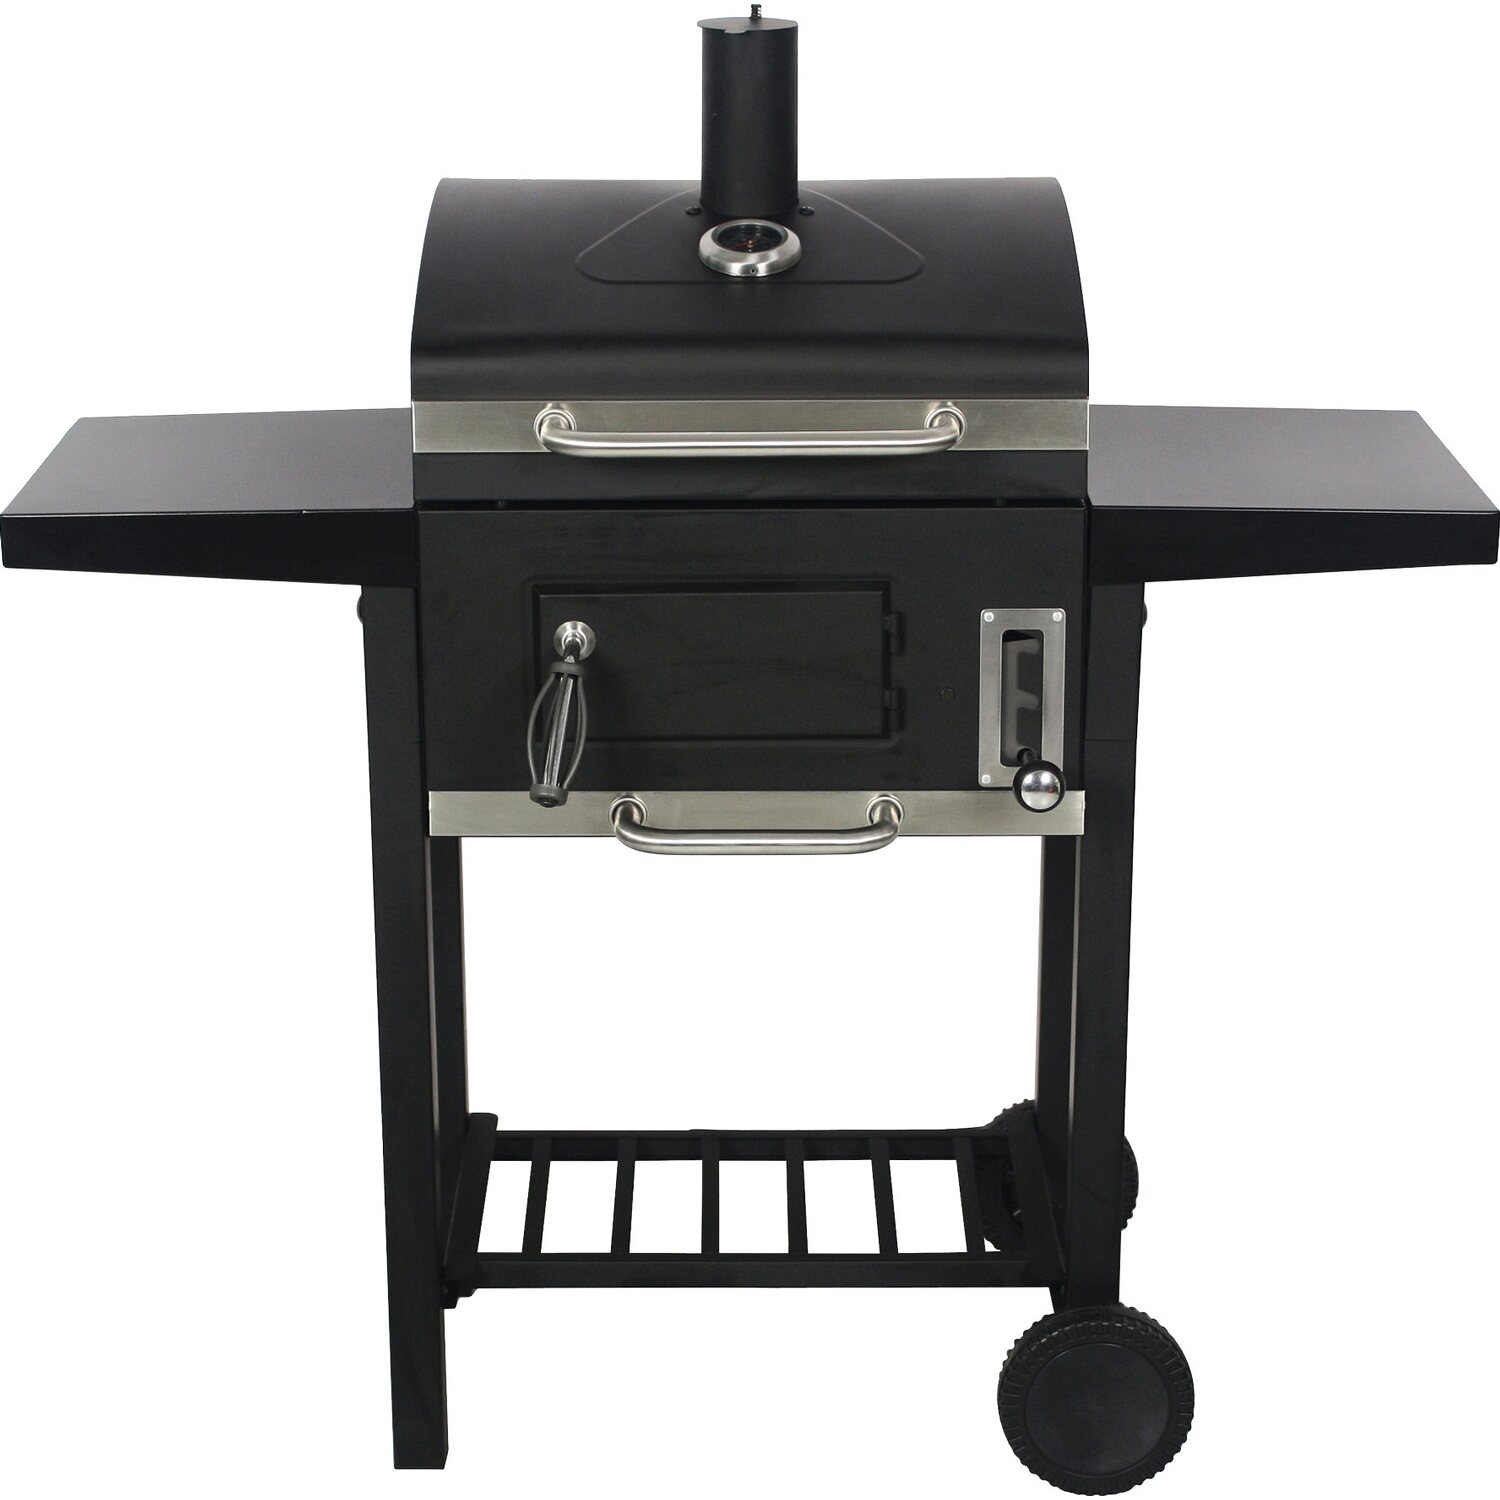 el fuego holzkohlegrill ottawa s schwarz kaufen bei obi. Black Bedroom Furniture Sets. Home Design Ideas